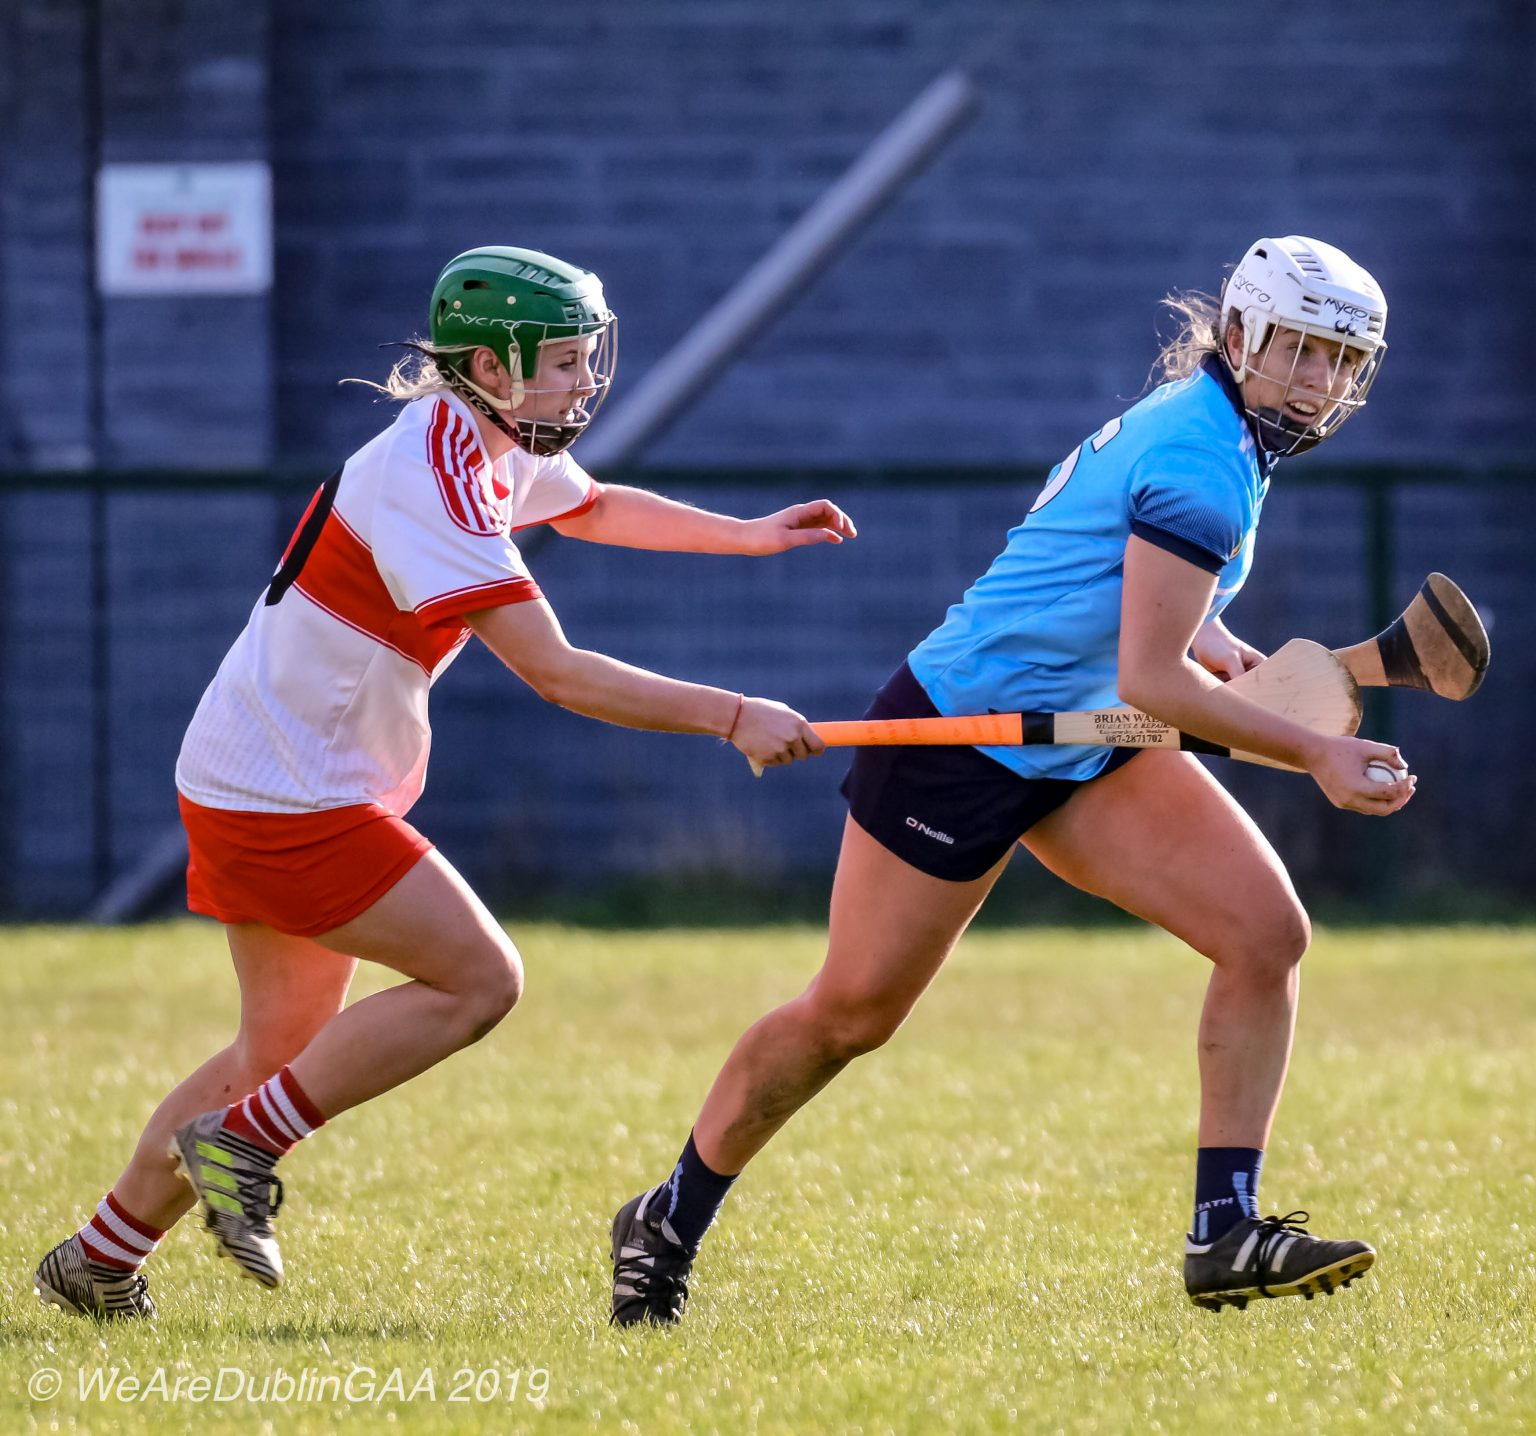 Dublin Camogie player in a sky blue jersey, navy skort and white helmet gets away from the tackle of a Derry player in a white jersey with band across the chest, red skort and green helmet image is used to advertise Féile